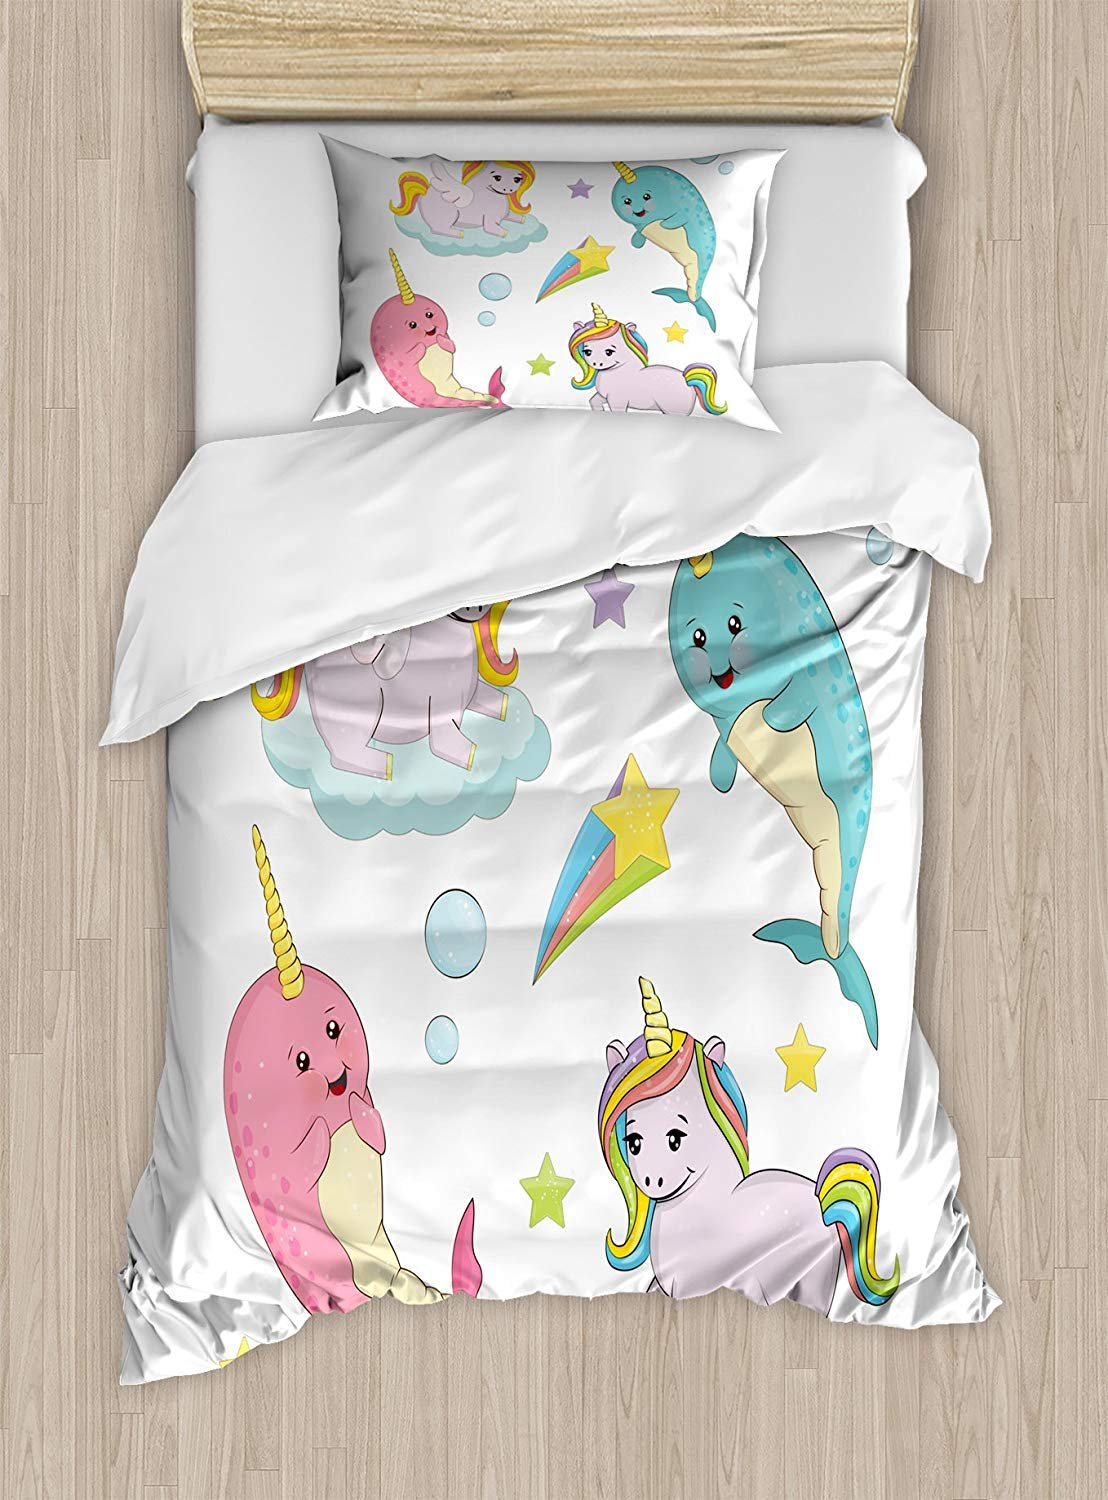 Narwhal Duvet Cover Set,Rainbow Colored Unicorns of the Land and Ocean Girly Illustration Colorful Cartoon,Cosy House Collection 4 Piece Bedding Sets